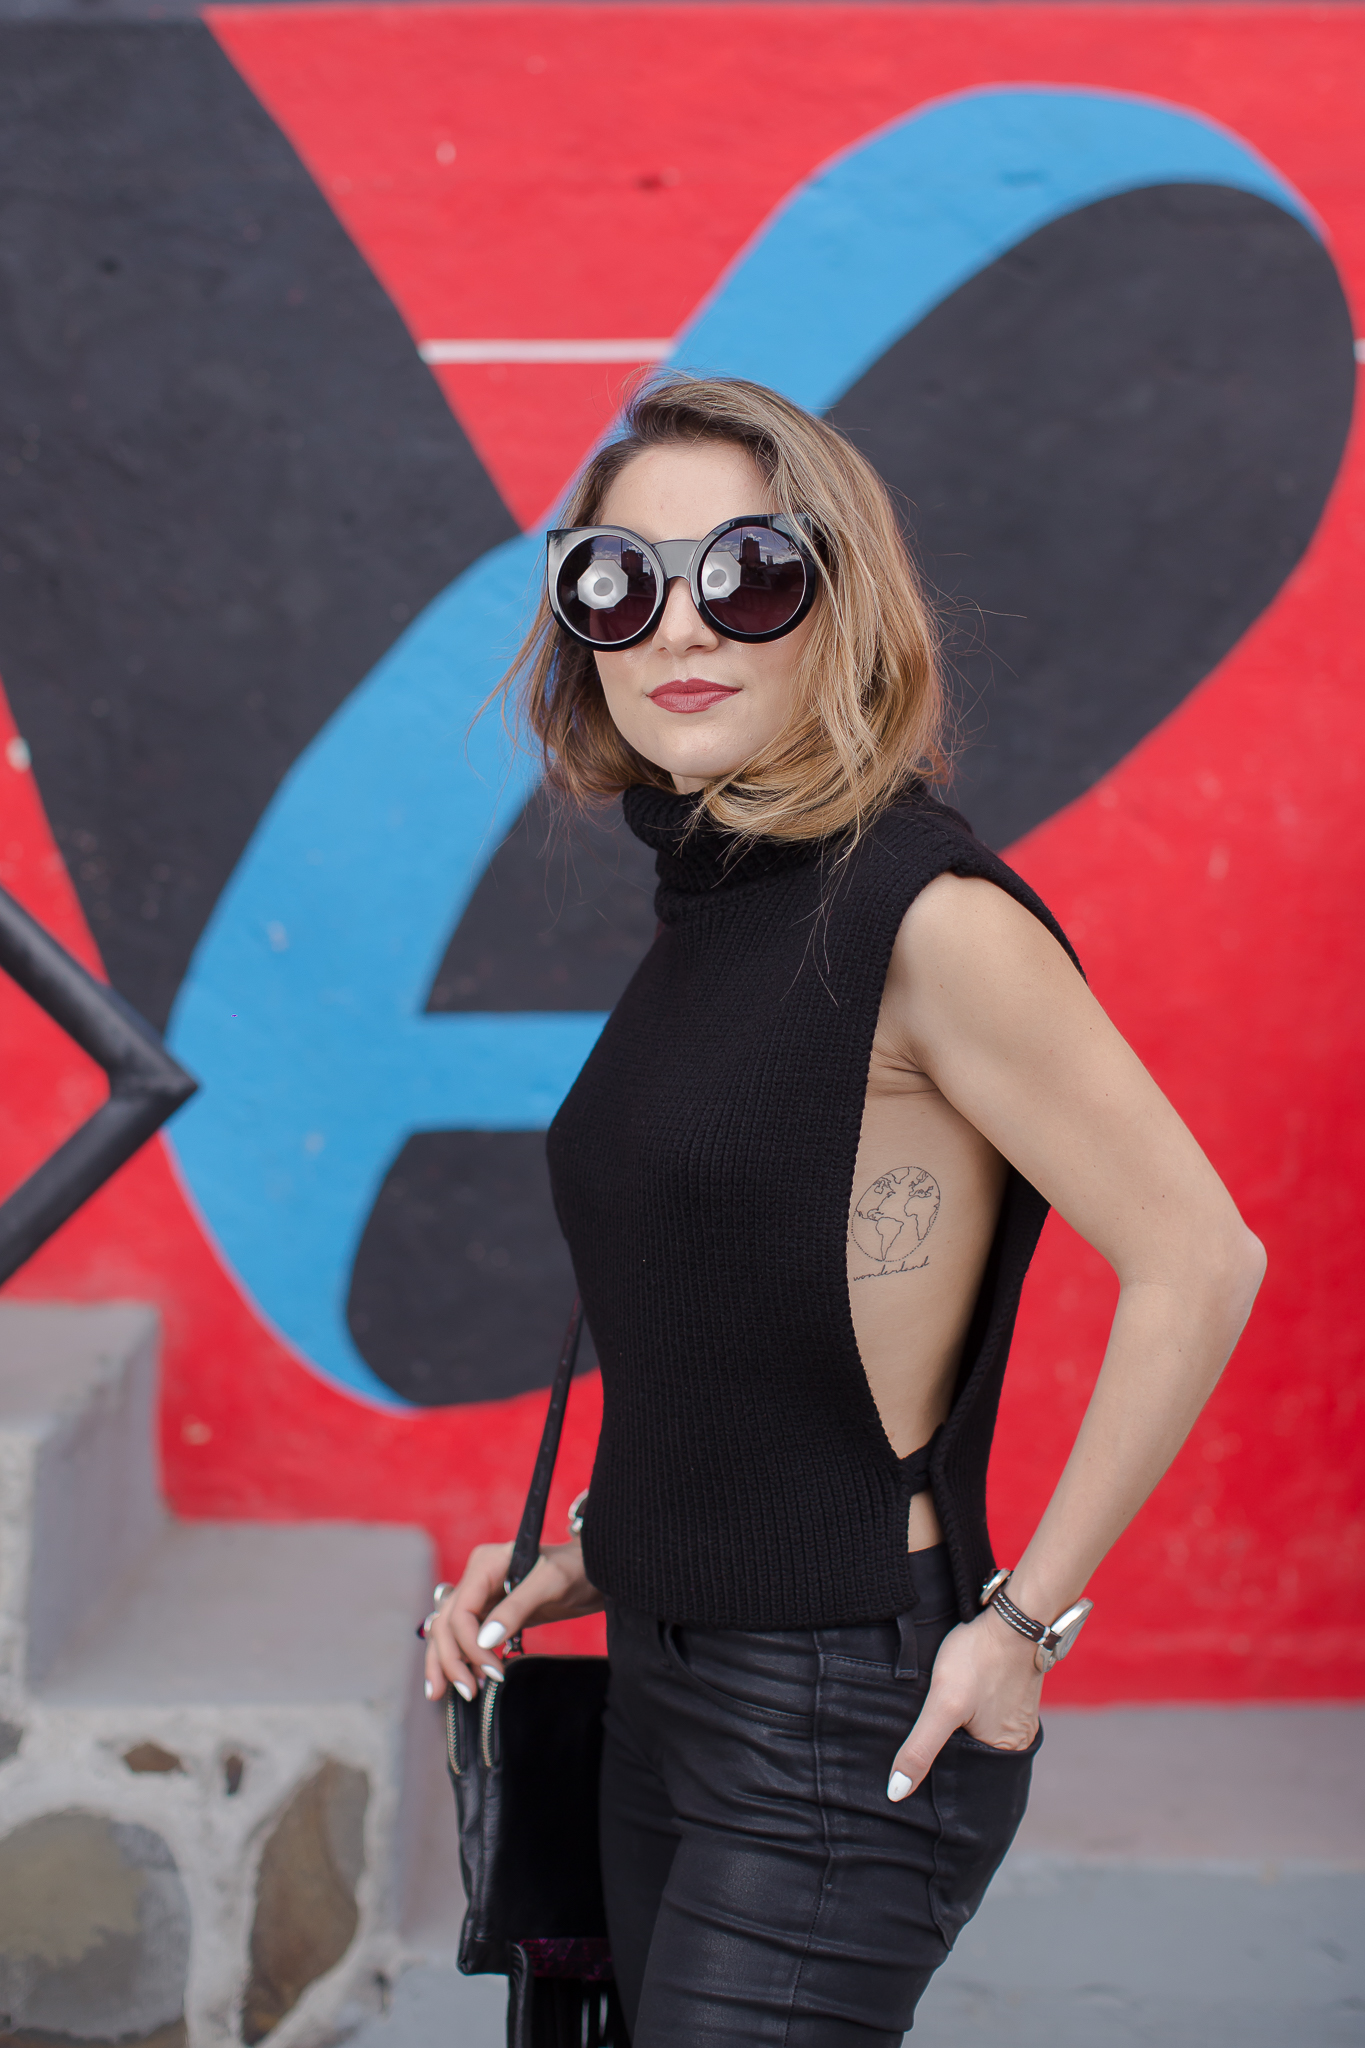 Whitney's Wonderland UK Top Fashion Blogger wears Wildfox Couture sunglasses, Joe's Jeans knit open sides knit vest, coated ripped jeans, and Kurt Geiger bow heels